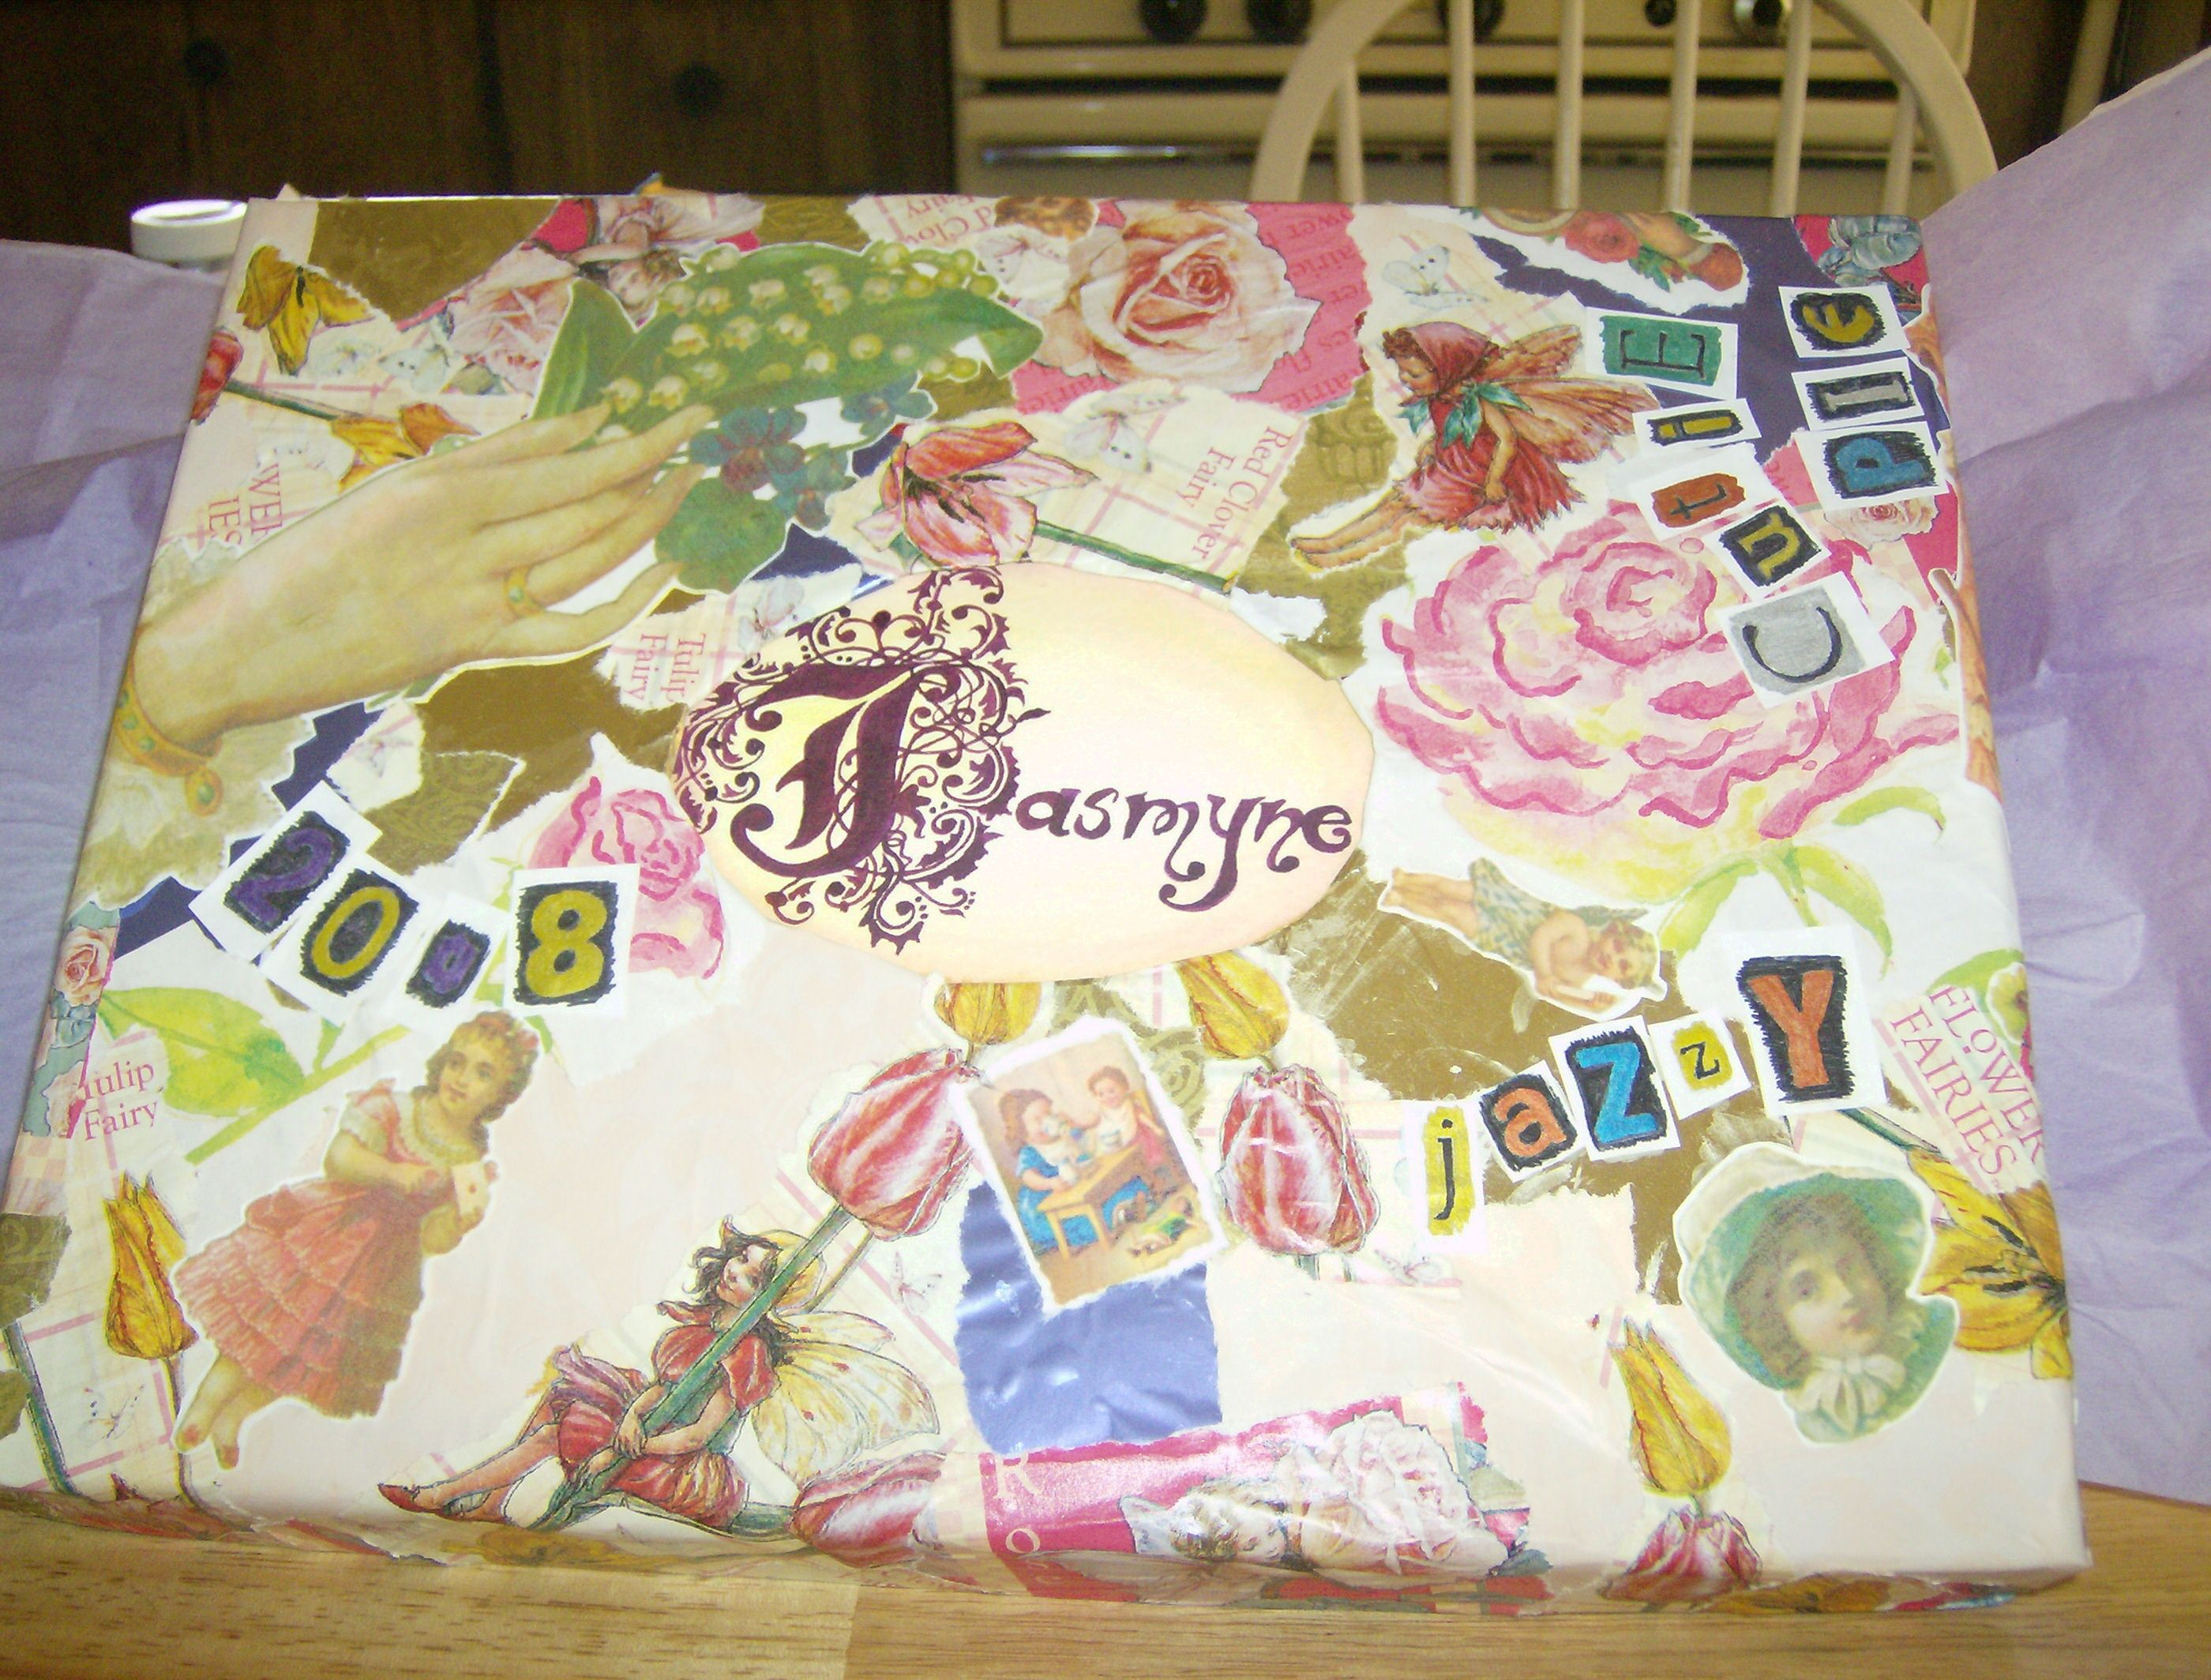 Jasmyne's collage box...a collage box fit for our granddaughter princess